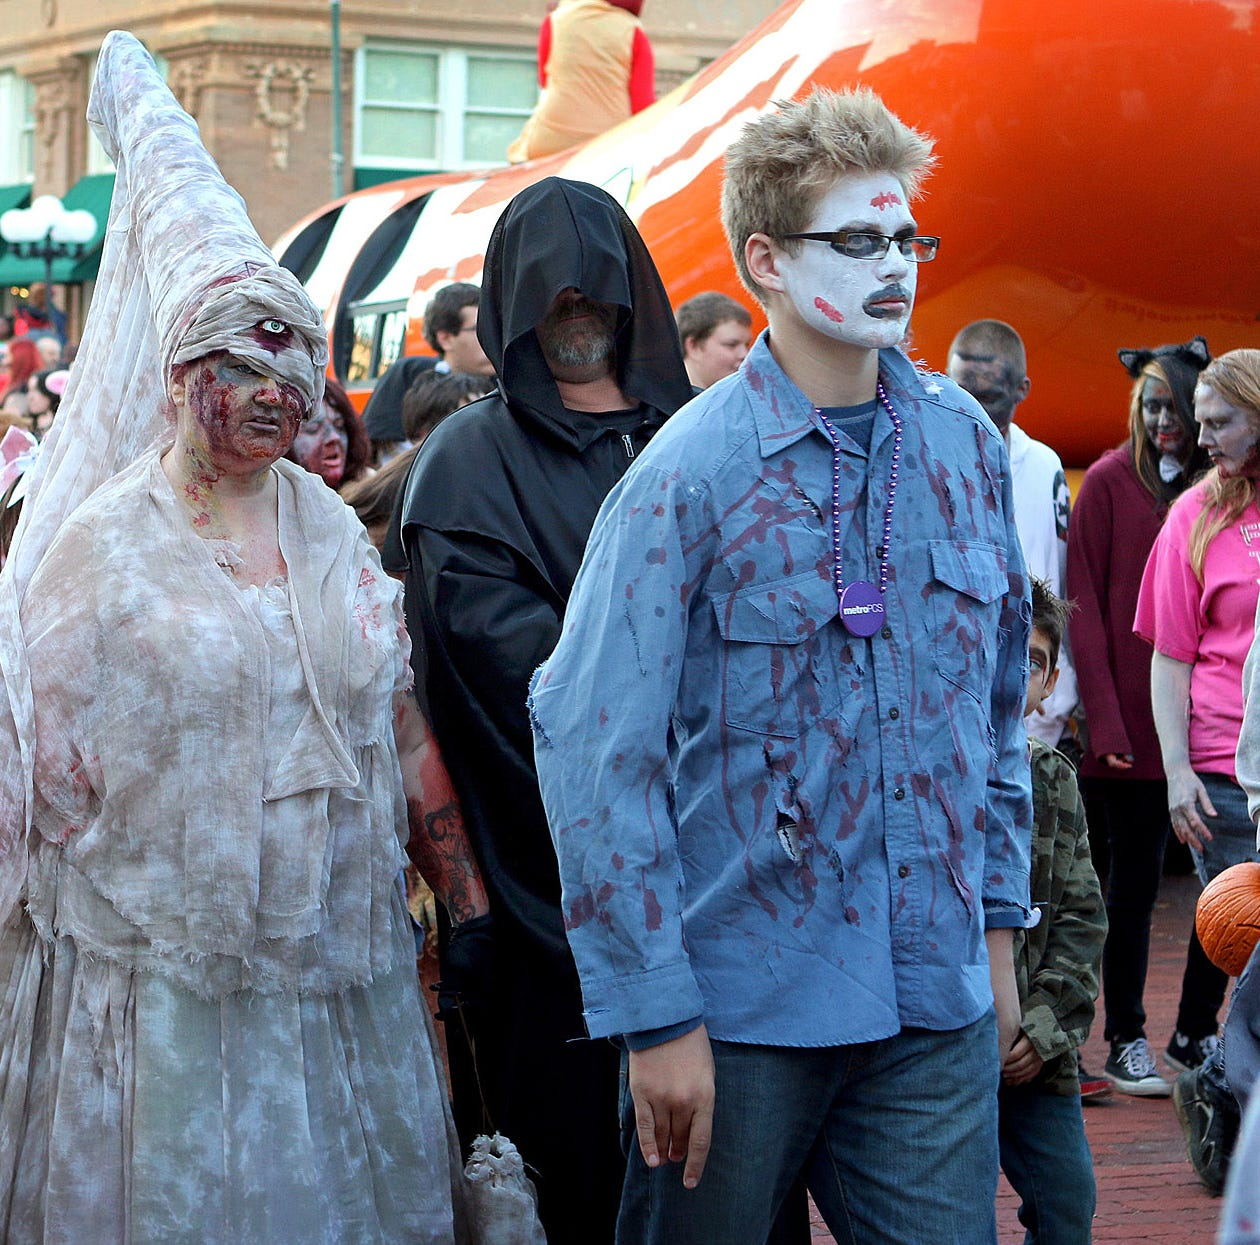 Wichita Falls Zombie Crawl going back to its roots after two-year hiatus